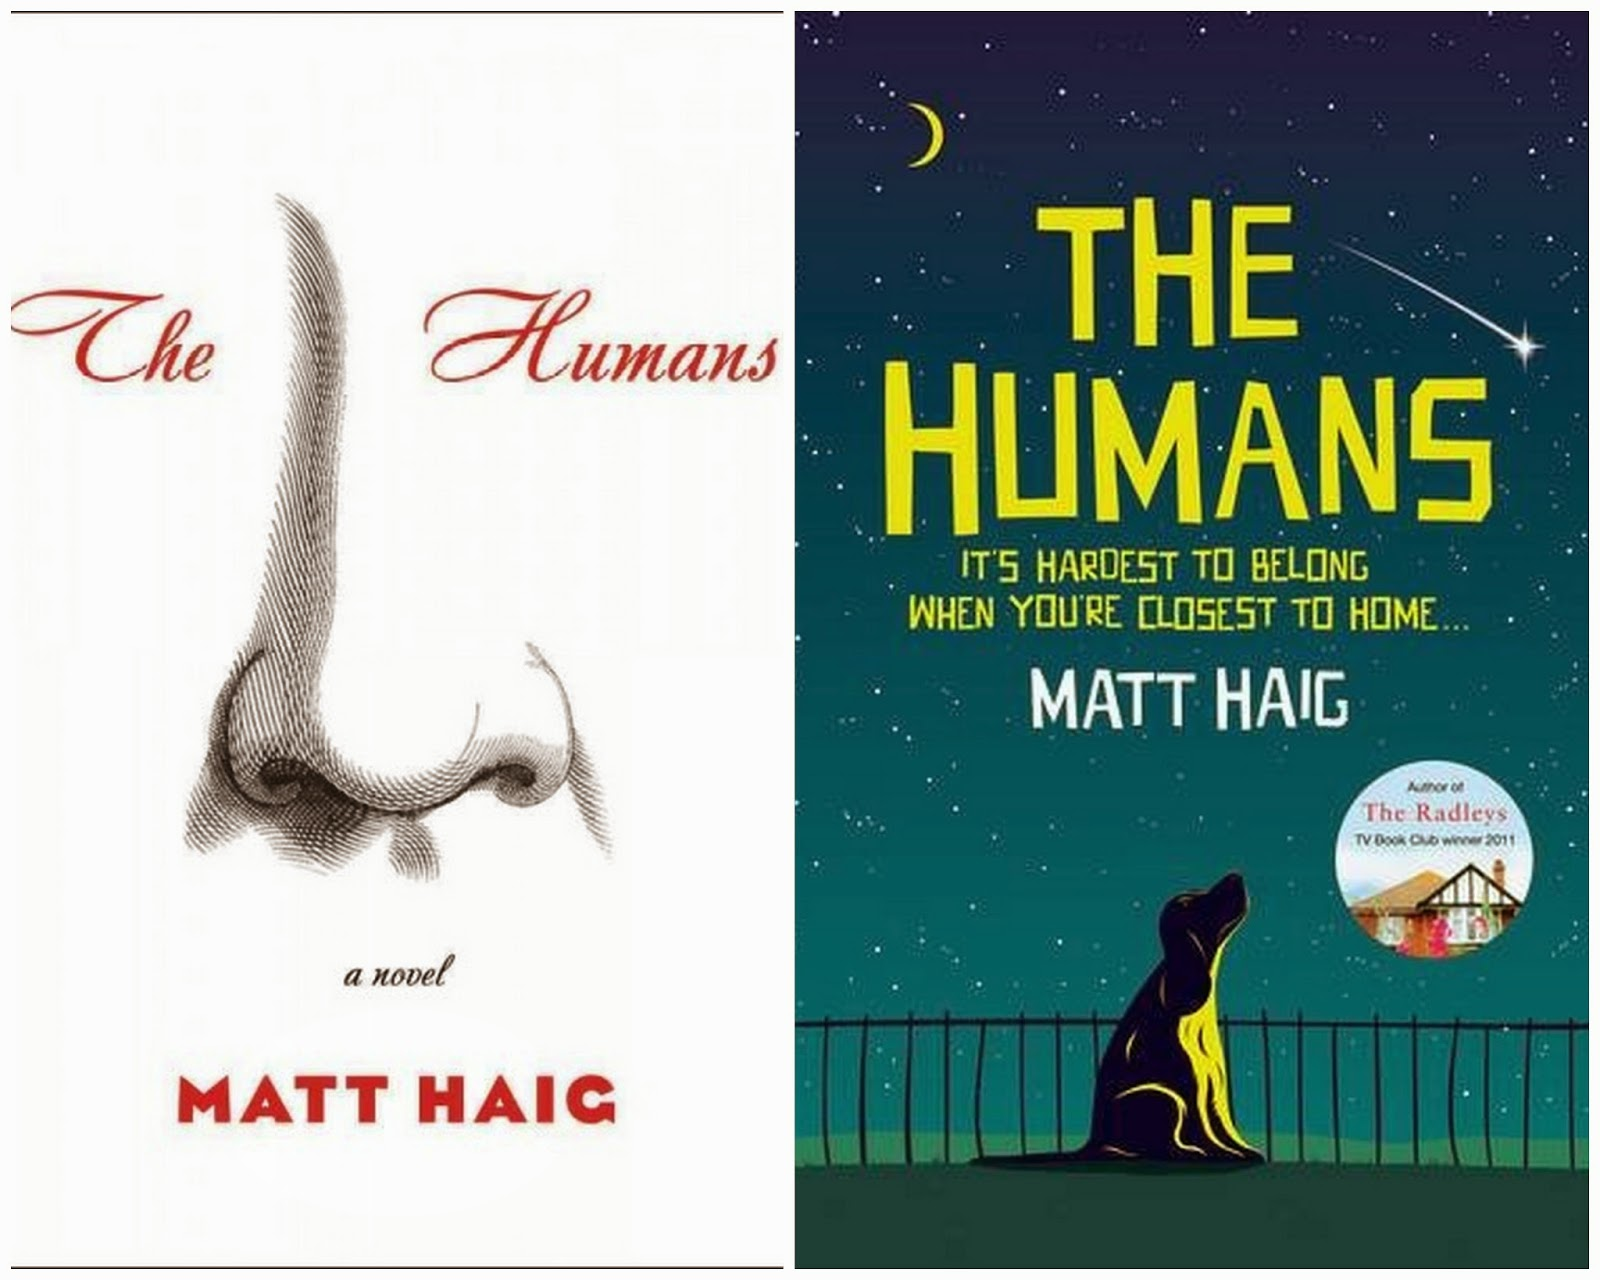 What On Earth Is An Artist's Rendering Of A Nose Supposed To Mean? I Have  No Idea The Cover Of Matt Haig's The Humans At Left Is The American  Version